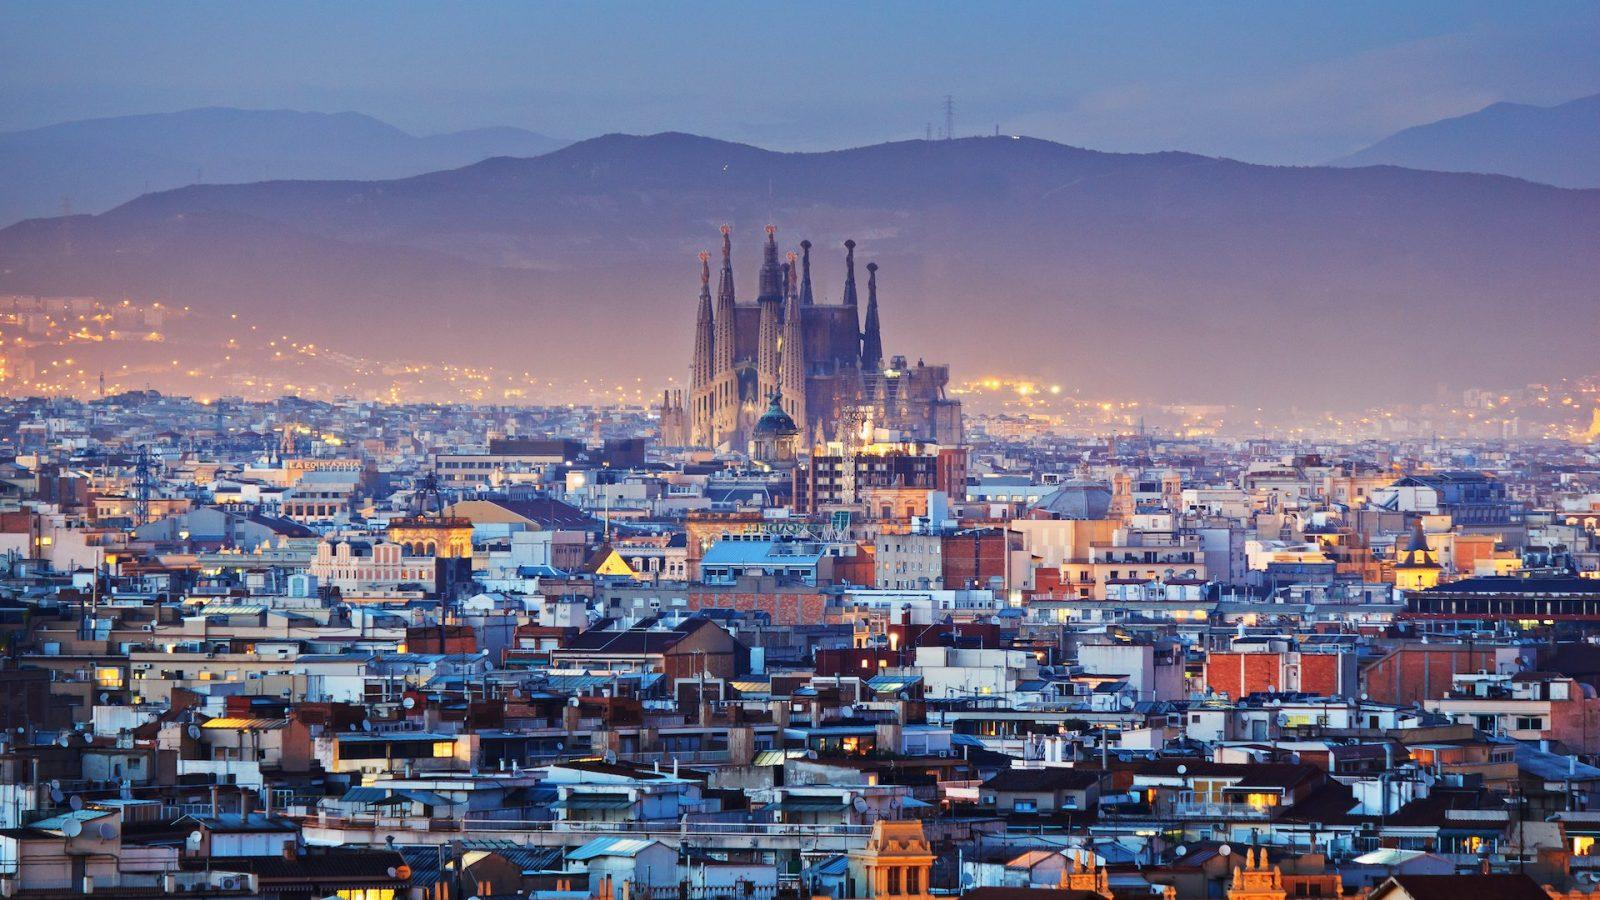 The city of Barcelona